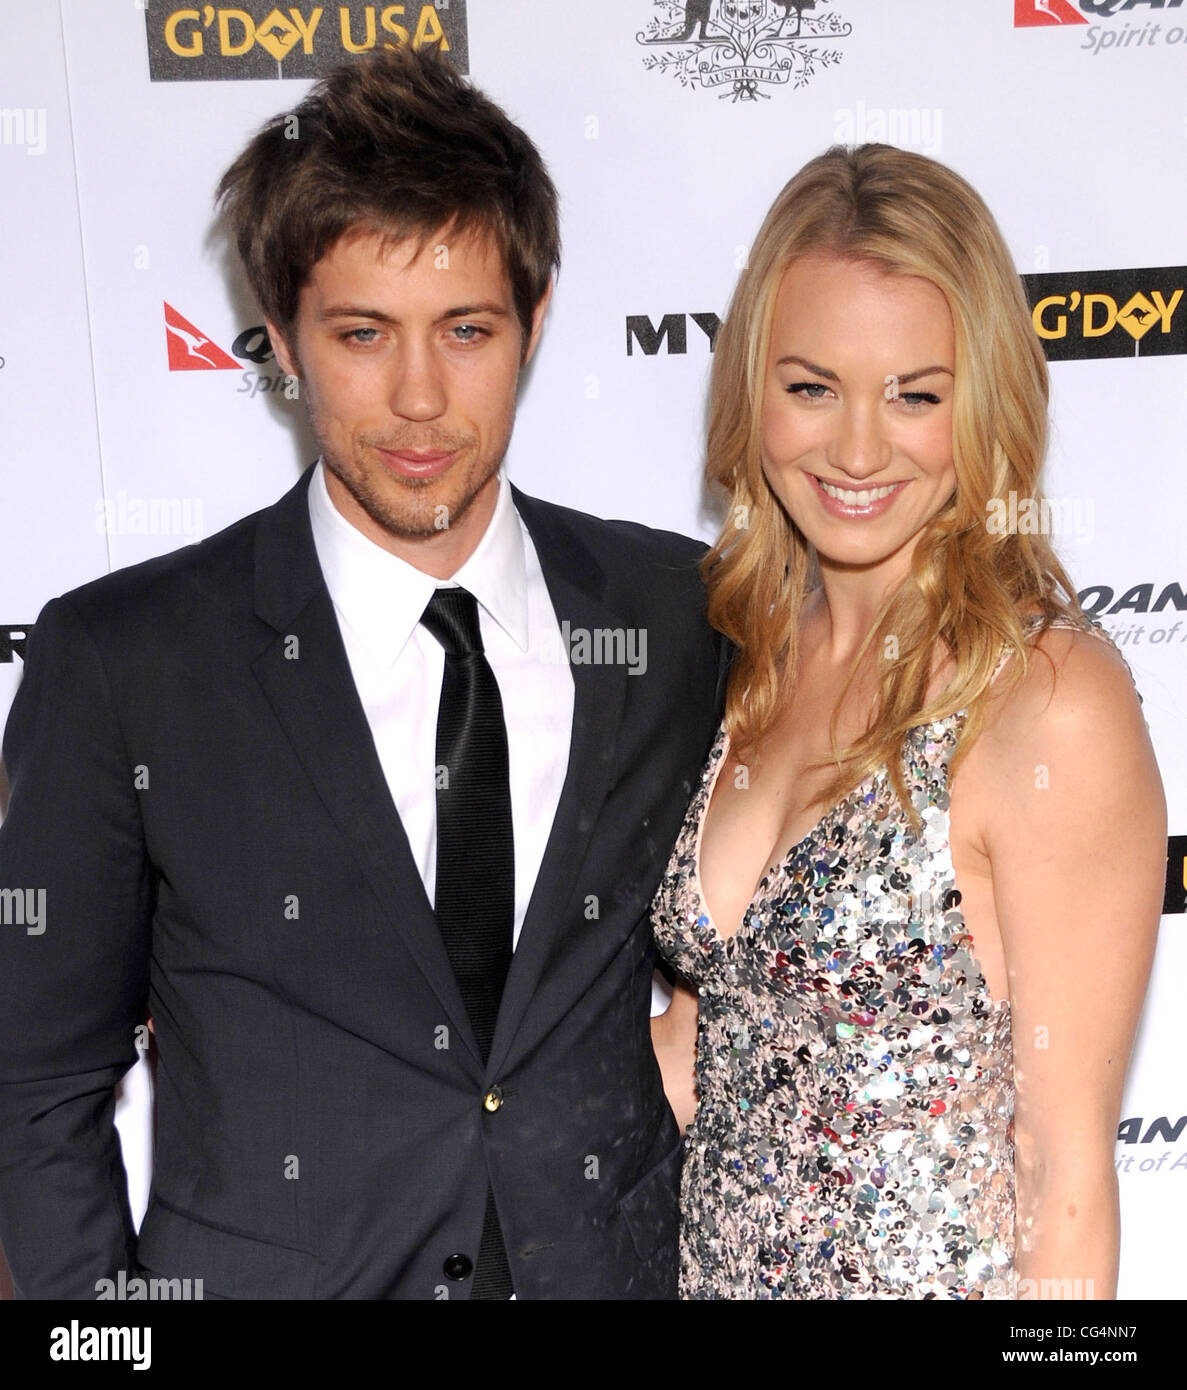 Tim Loden And Yvonne Strahovski 2011 G Day Usa Los Angeles Black Tie Stock Photo Alamy Watch online free tim loden movies | putlocker on putlocker 2019 new site in hd without downloading or registration. https www alamy com stock photo tim loden and yvonne strahovski 2011 gday usa los angeles black tie 44360099 html